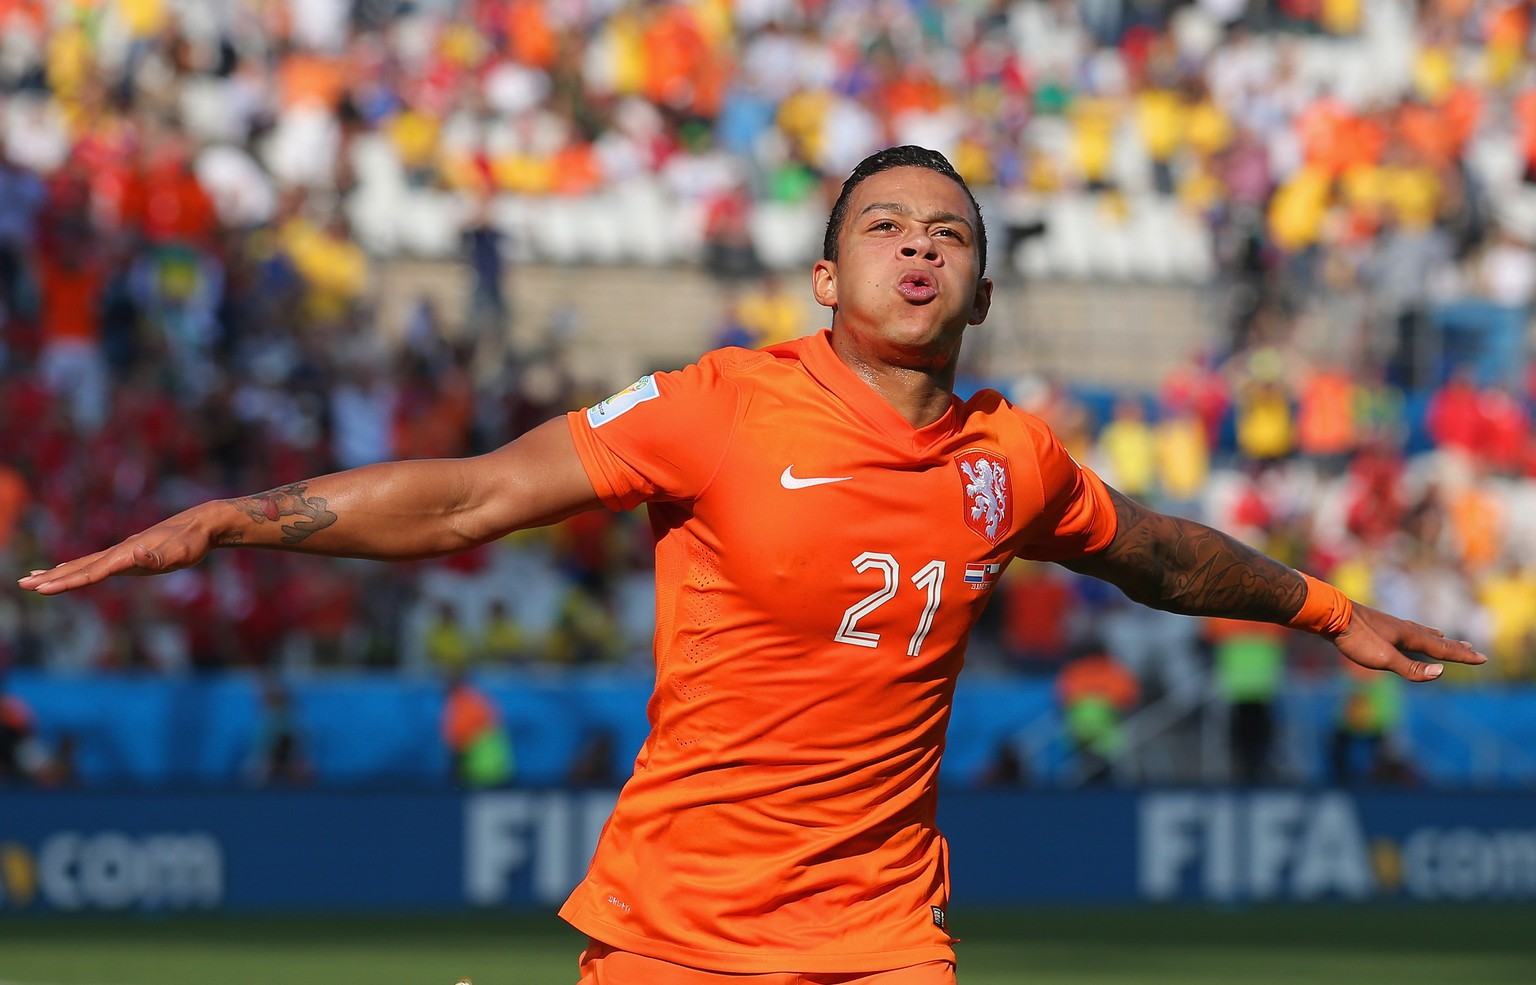 SAO PAULO, BRAZIL - JUNE 23:  Memphis Depay of the Netherlands celebrates scoring his team's second goal during the 2014 FIFA World Cup Brazil Group B match between the Netherlands and Chile at Arena de Sao Paulo on June 23, 2014 in Sao Paulo, Brazil.  (Photo by Dean Mouhtaropoulos/Getty Images)